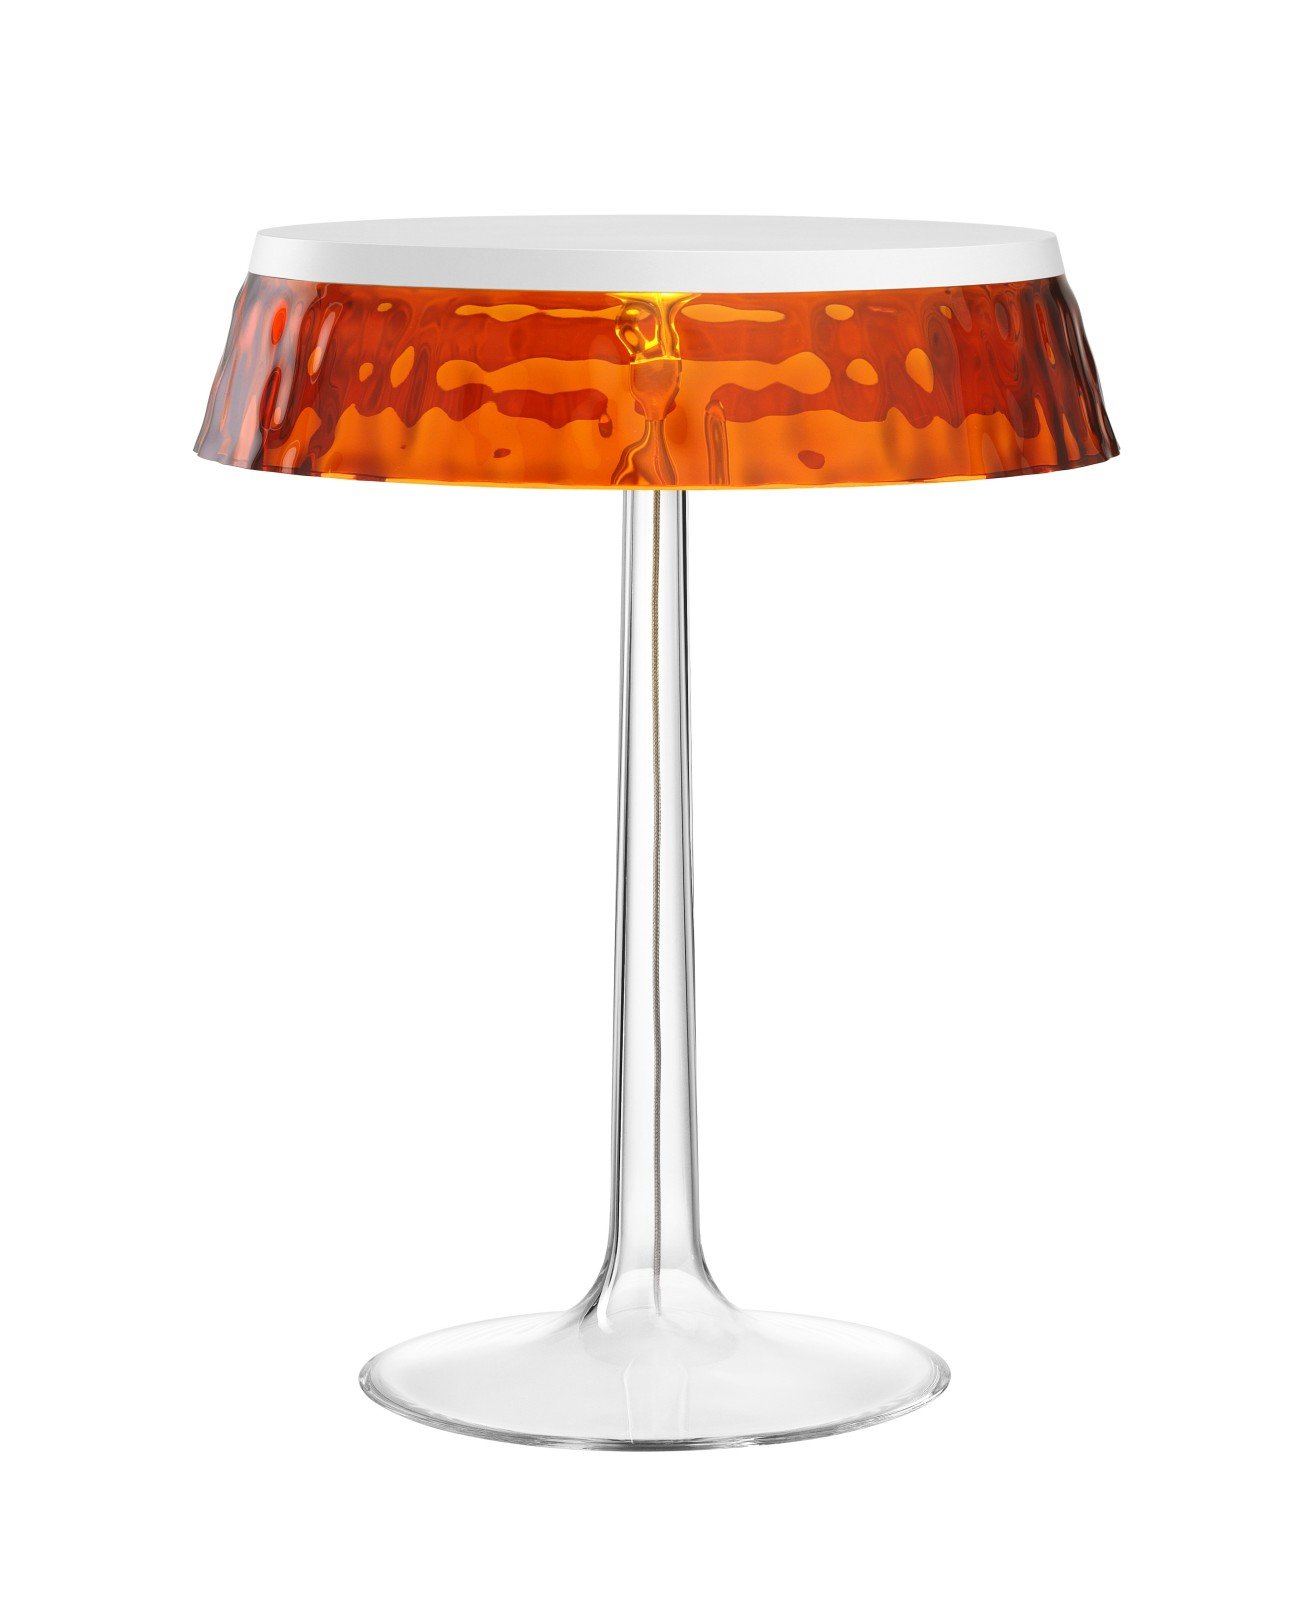 Bon Jour T Table Lamp White Top, Amber Shade